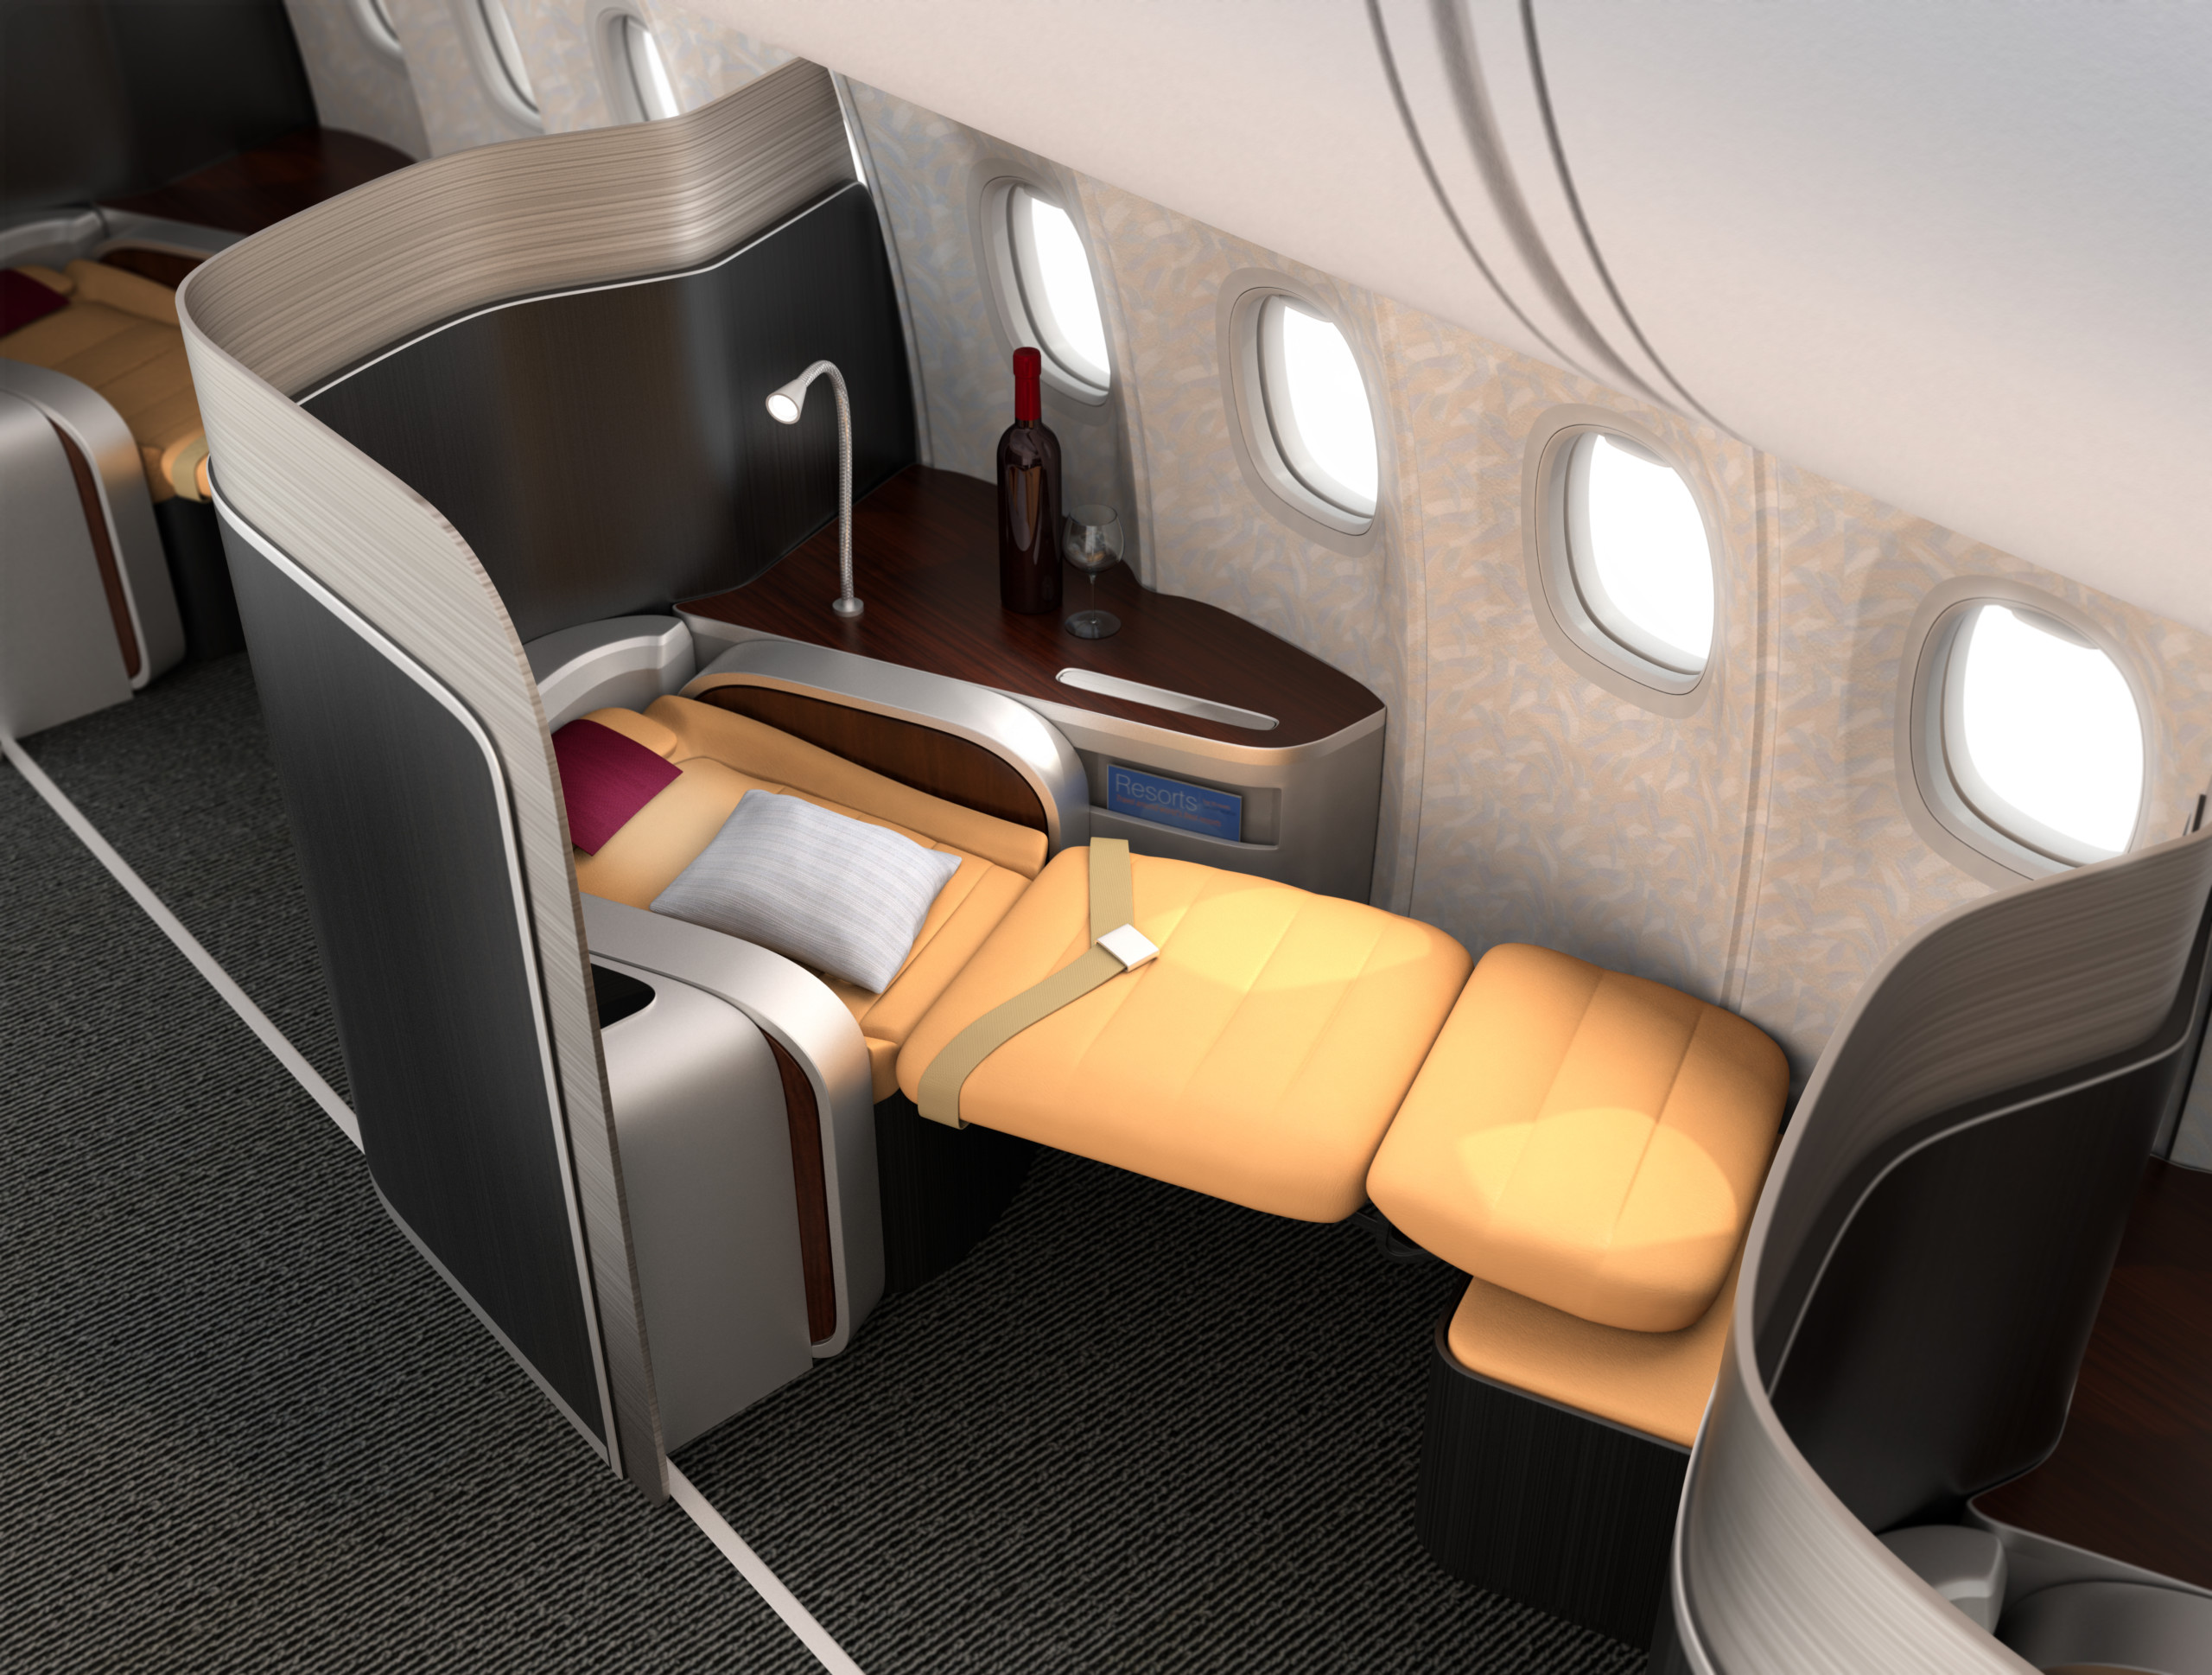 What Is Aircraft Cabin Design?